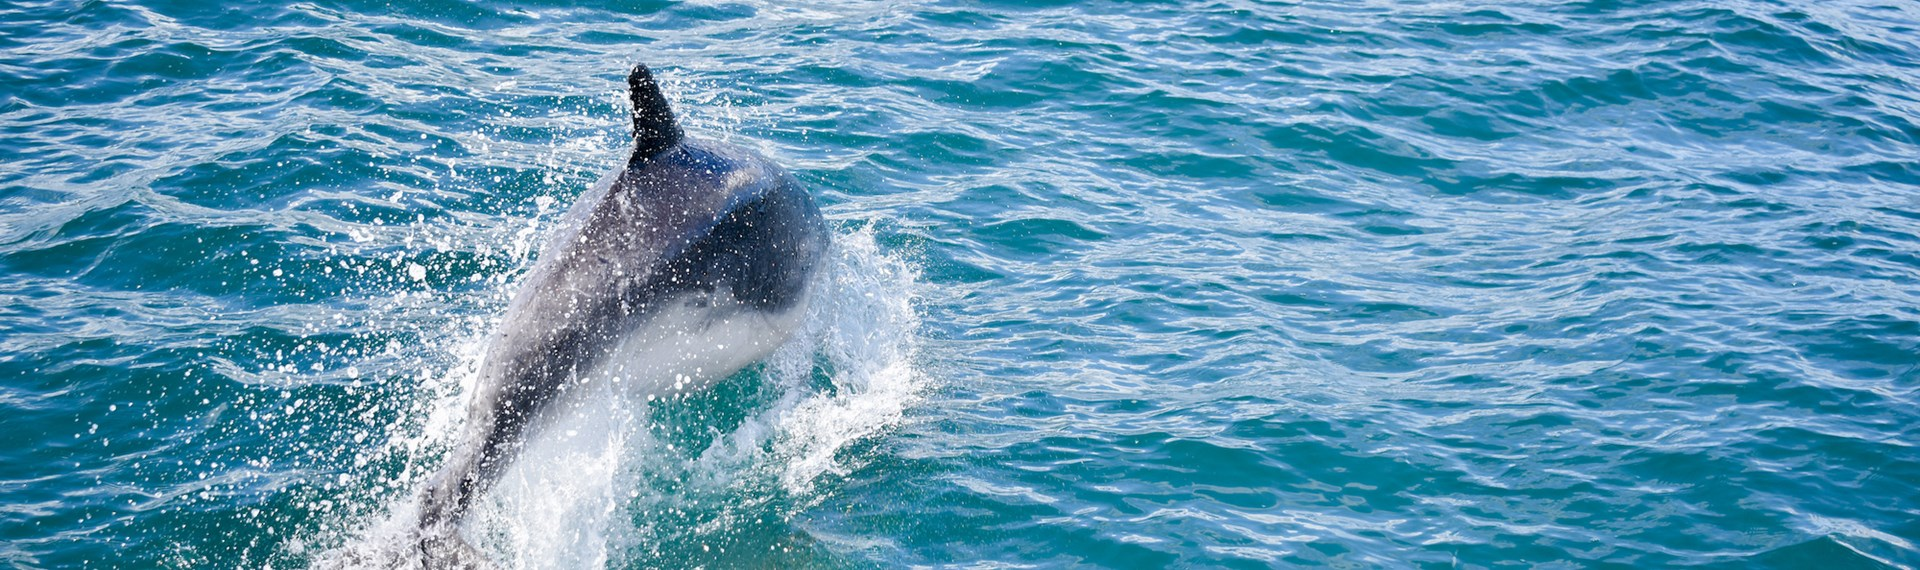 Dolphin spotted during Pelorus Mail Boat Cruise in the Pelorus Sound/Te Hoiere.